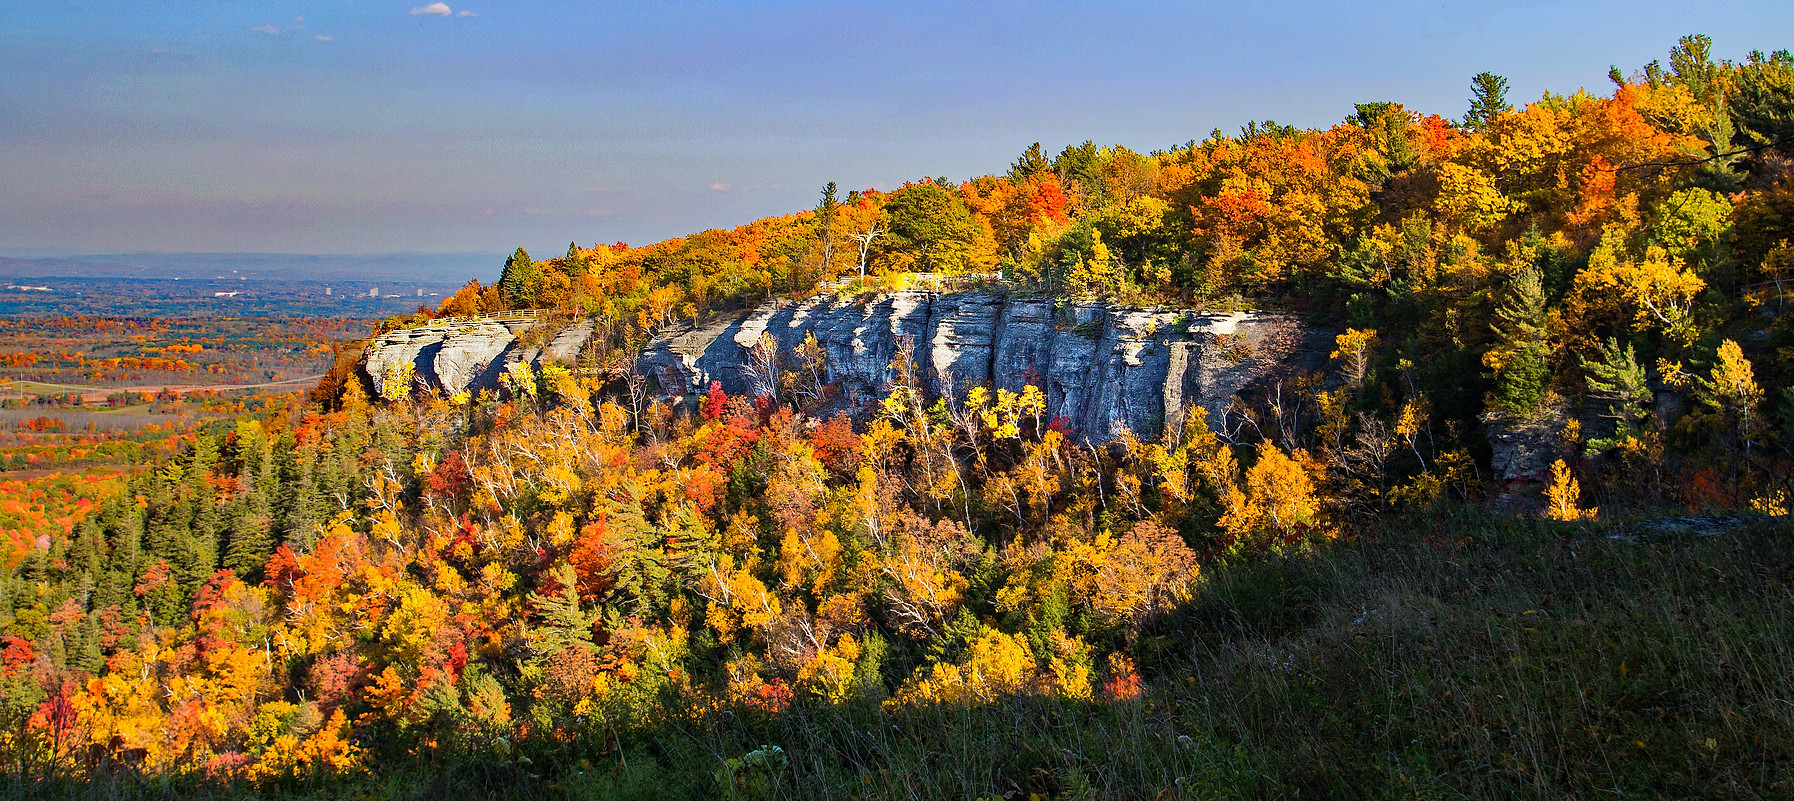 Autumn at the Escarpment